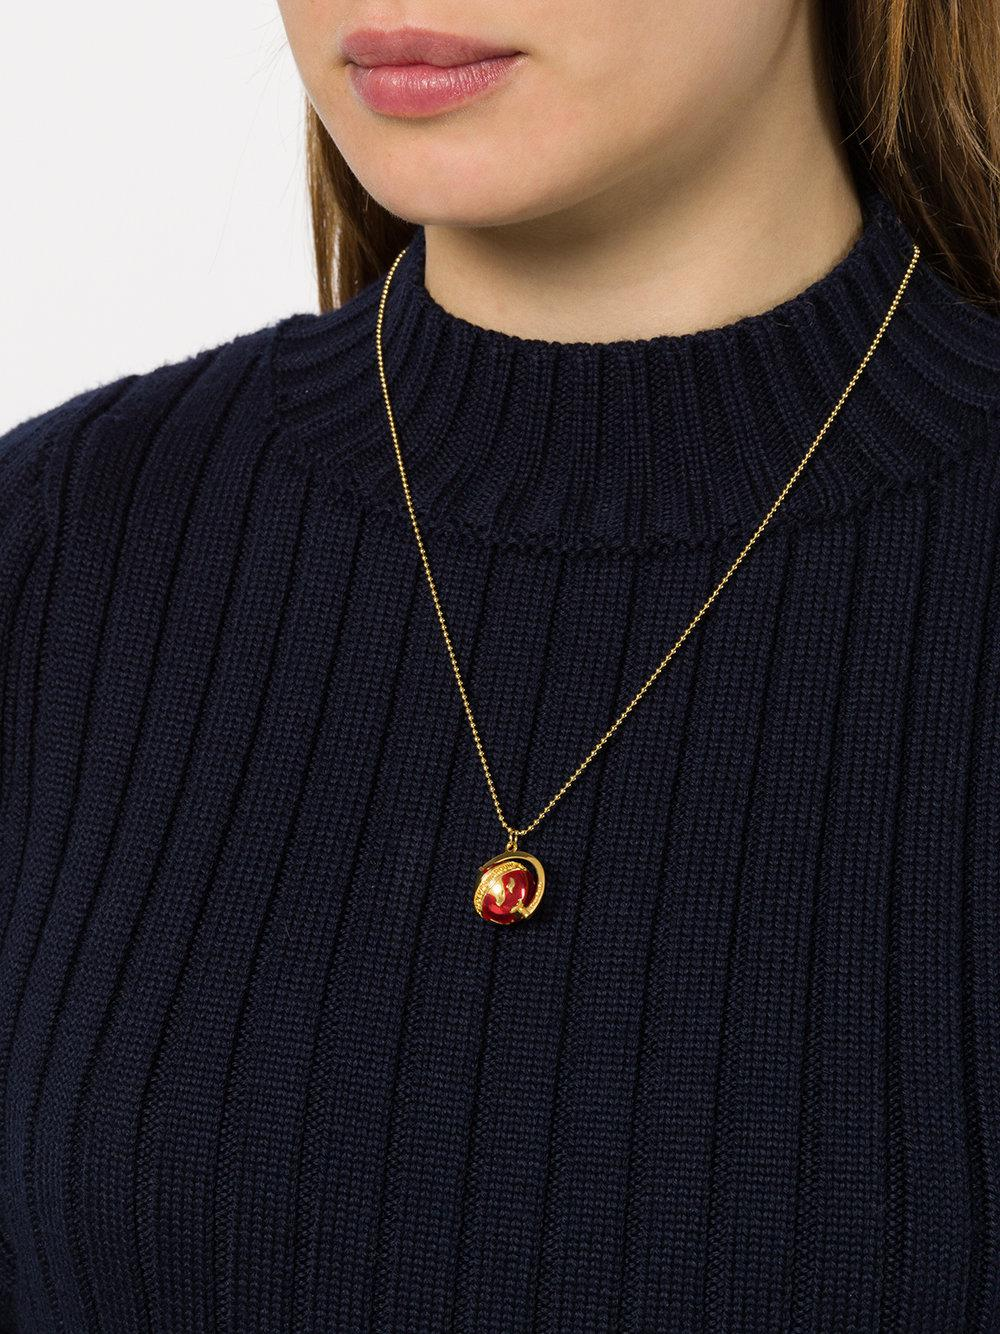 True Rocks Small Globe Pendant Necklace in Red